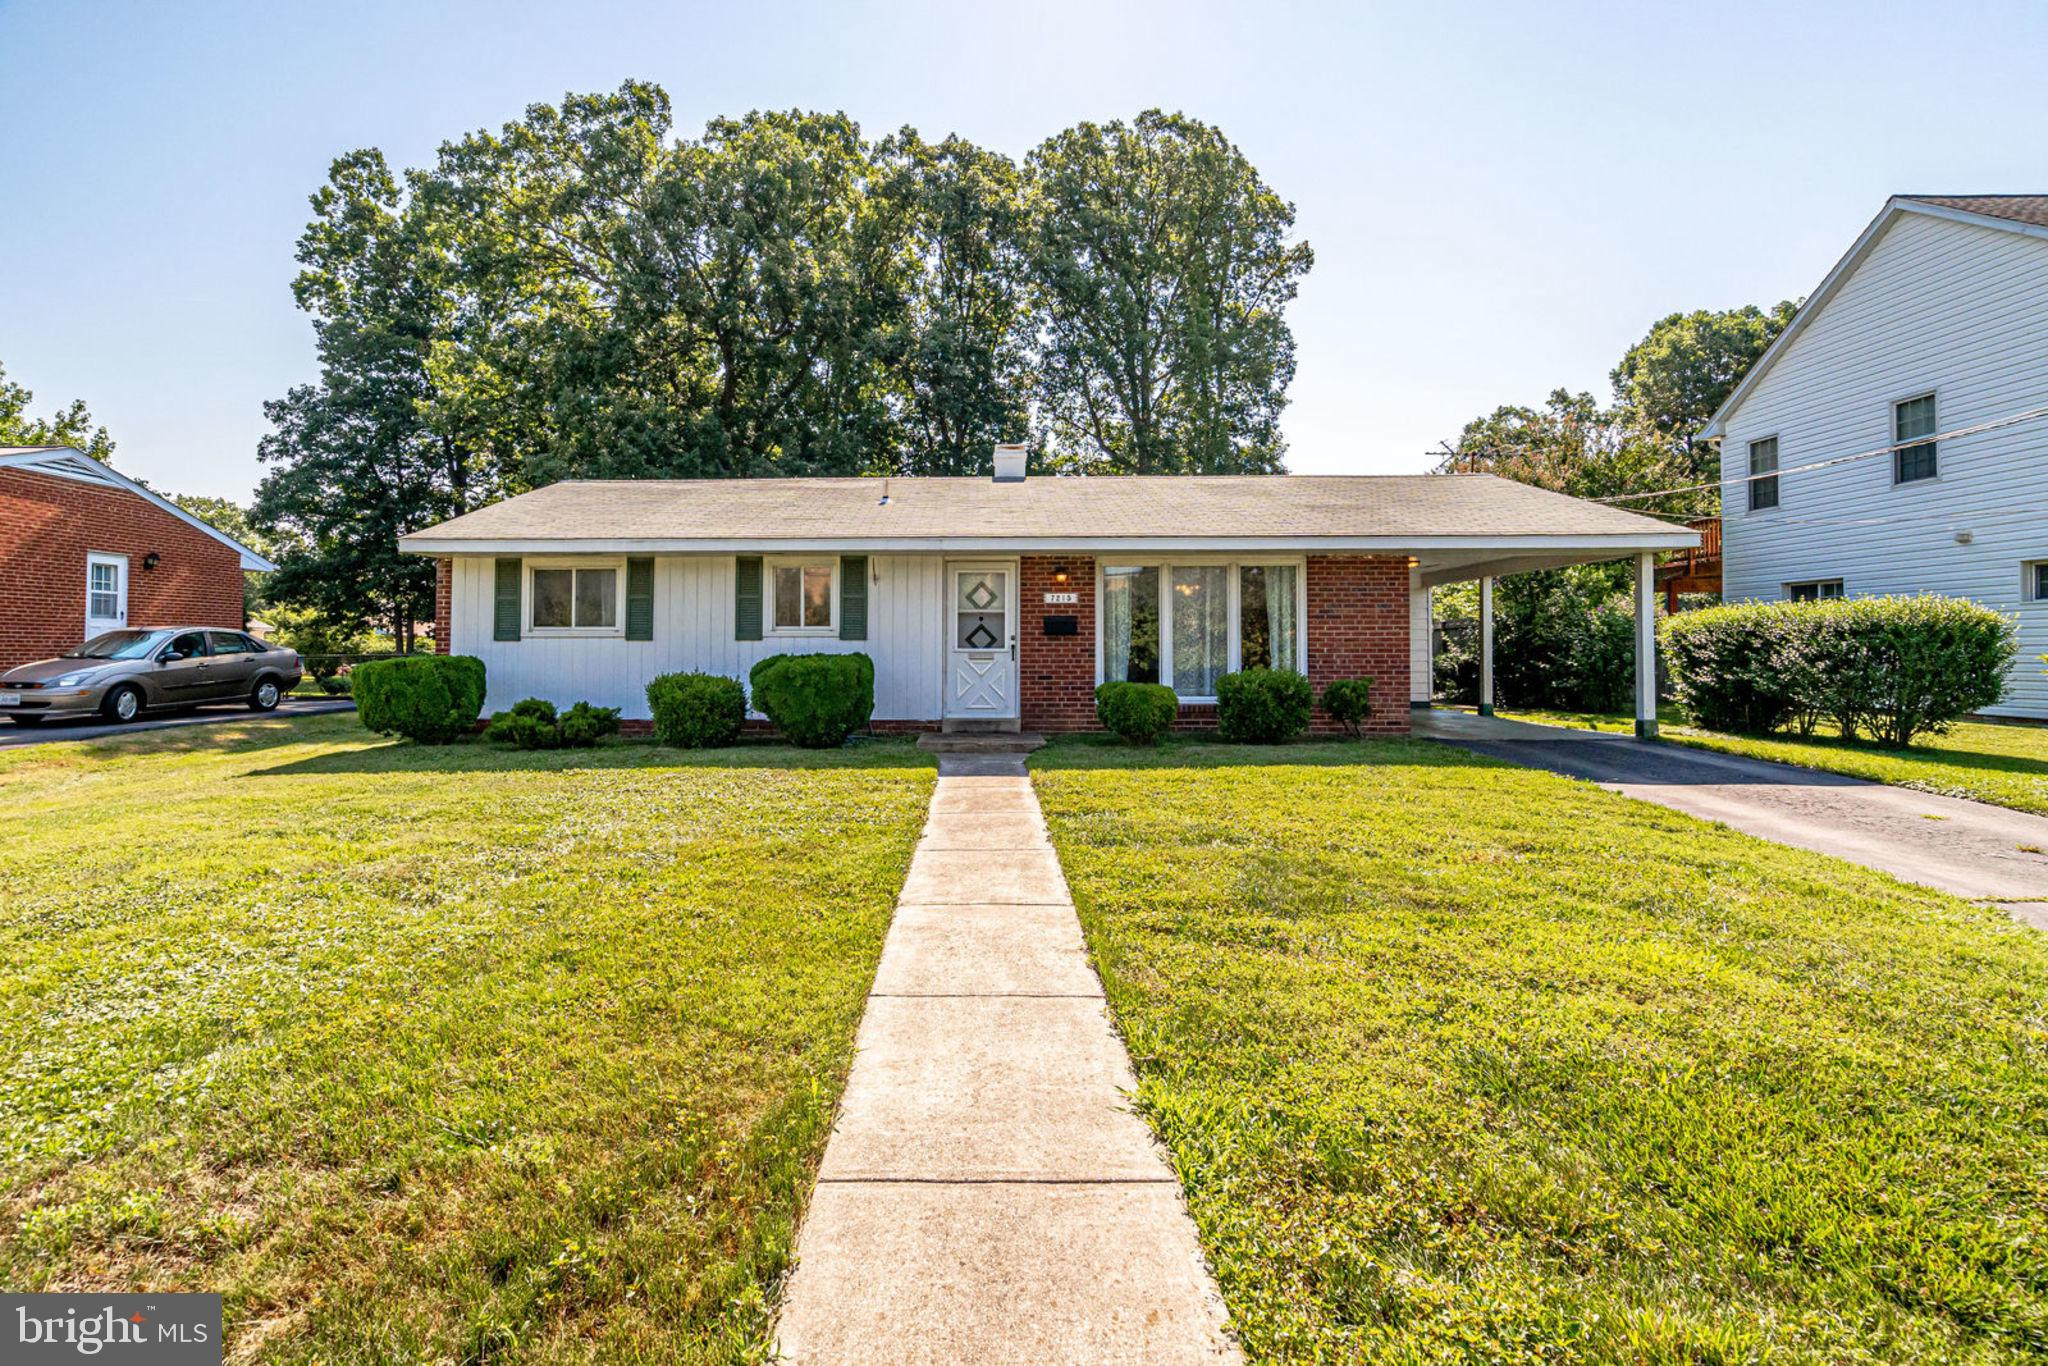 Terrific opportunity to own a one level brick rambler with family room addition, bonus room and screened-in porch. Great potential to expand or renovate. This home is an estate and is being sold as-is, but needs only cosmetic updates. Most systems have been replaced in the last few years including HVAC, hot water heater and windows. Roof inspected in 2018 and given clean bill of health. Great, flat backyard, storage shed, carport. Minutes to I95, I495, restaurants, Springfield town center and Metro.